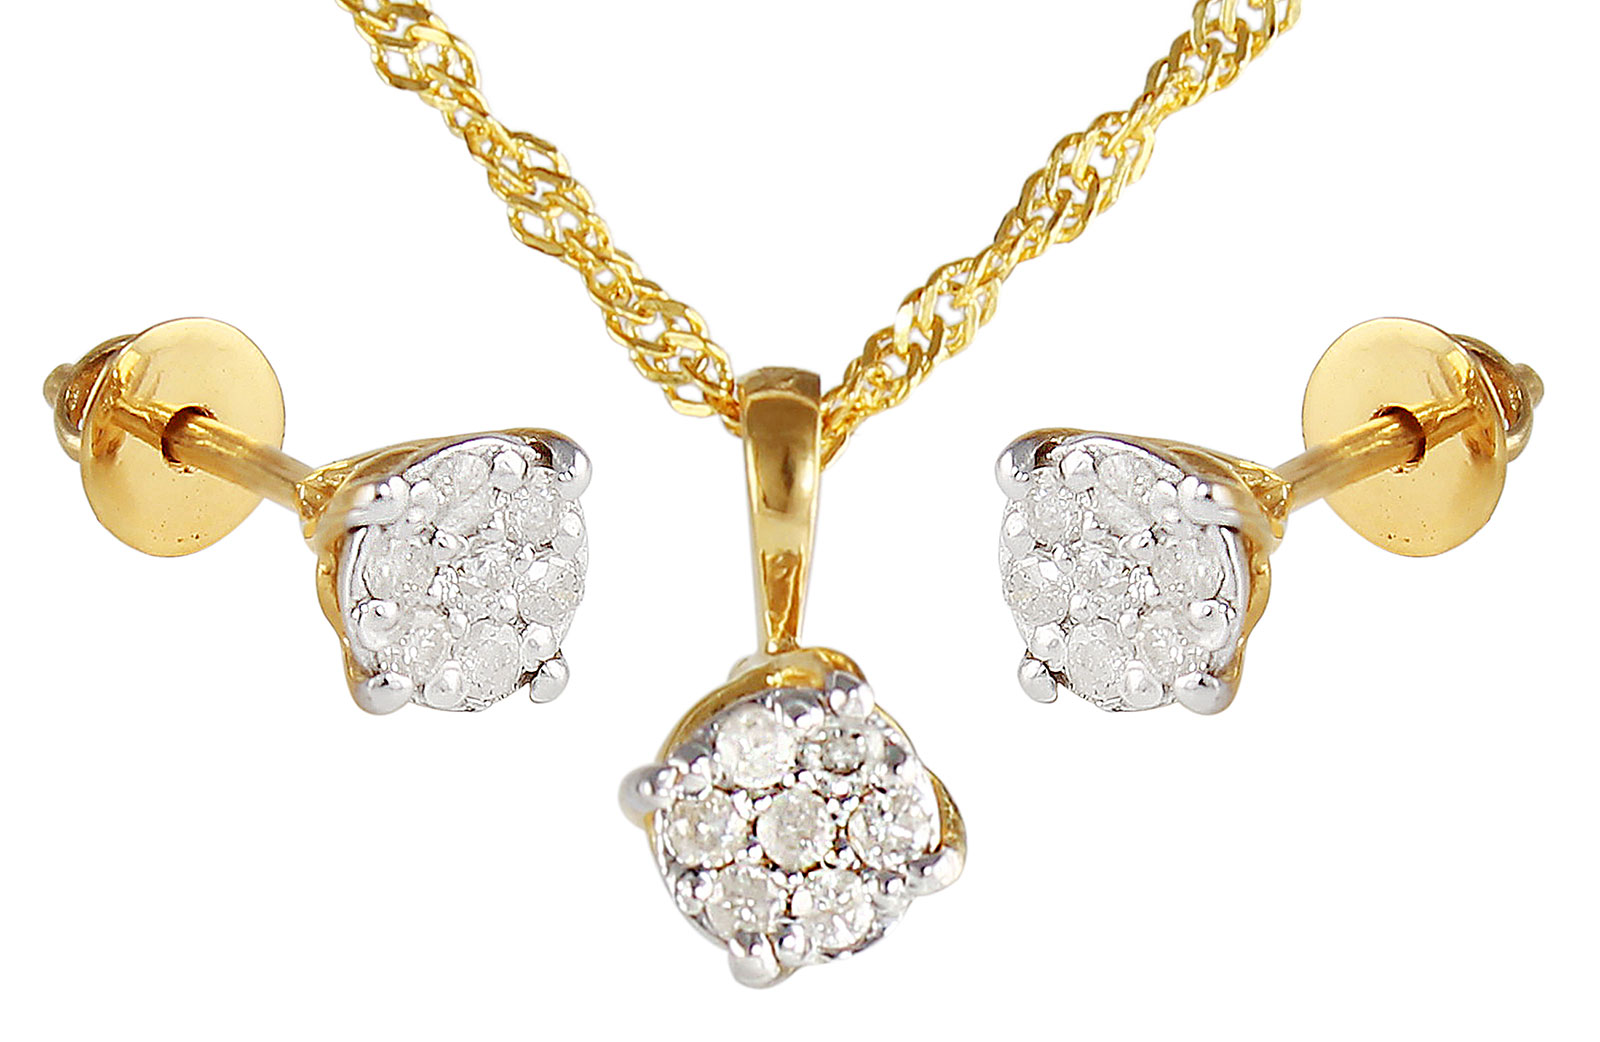 Vera Perla 18K Solid Yellow Gold 0.21Cts Genuine Diamonds Twisted Solitaire Necklace +Earrings Set